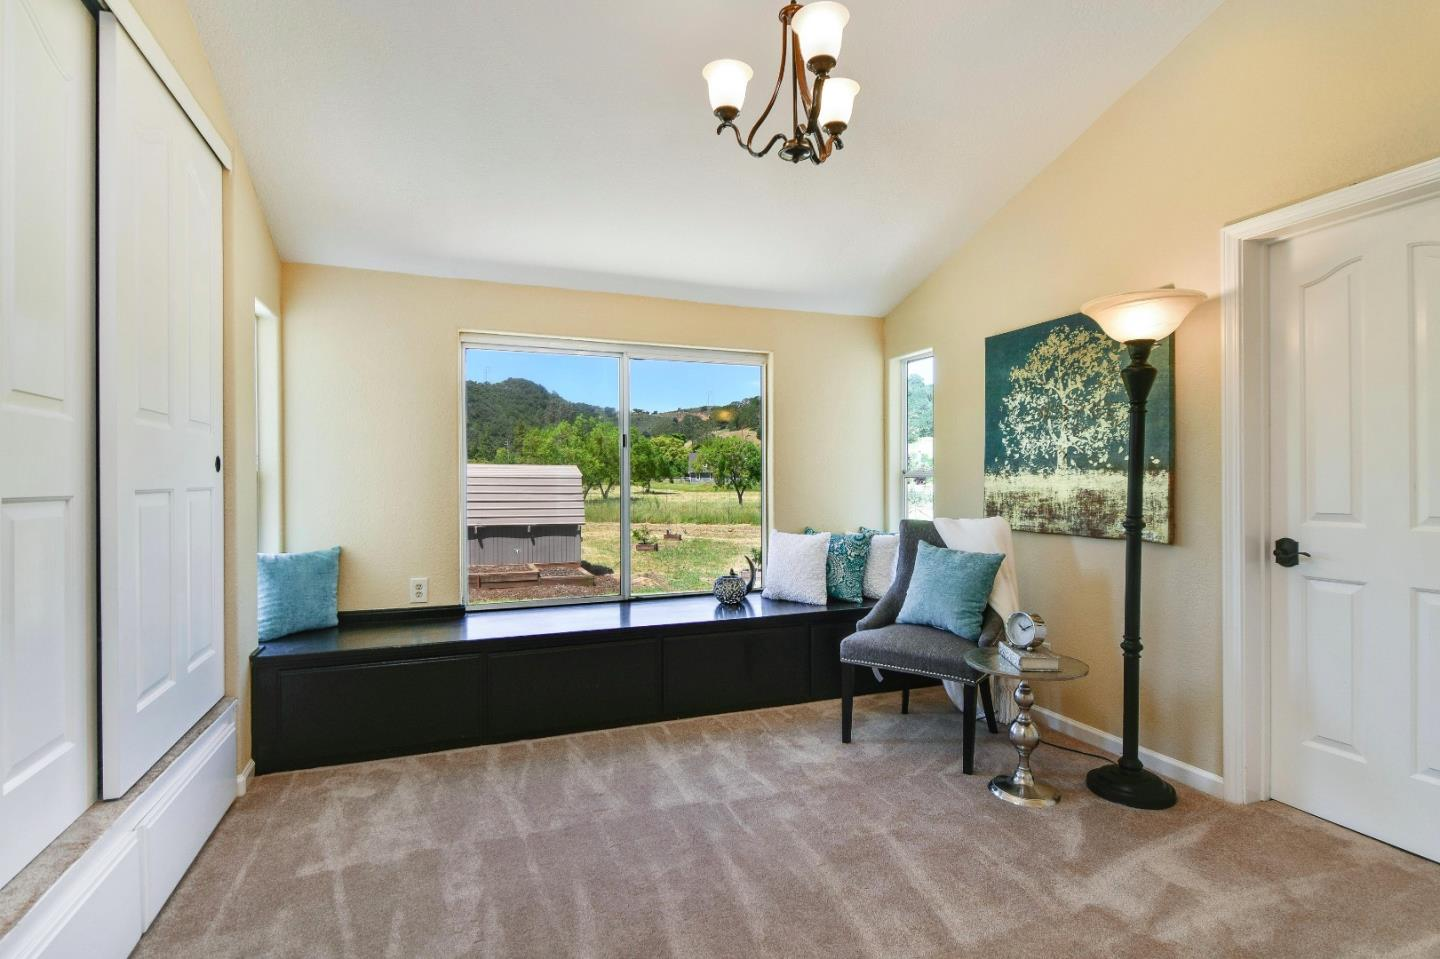 Additional photo for property listing at 13420 Sycamore Drive  Morgan Hill, California 95037 United States